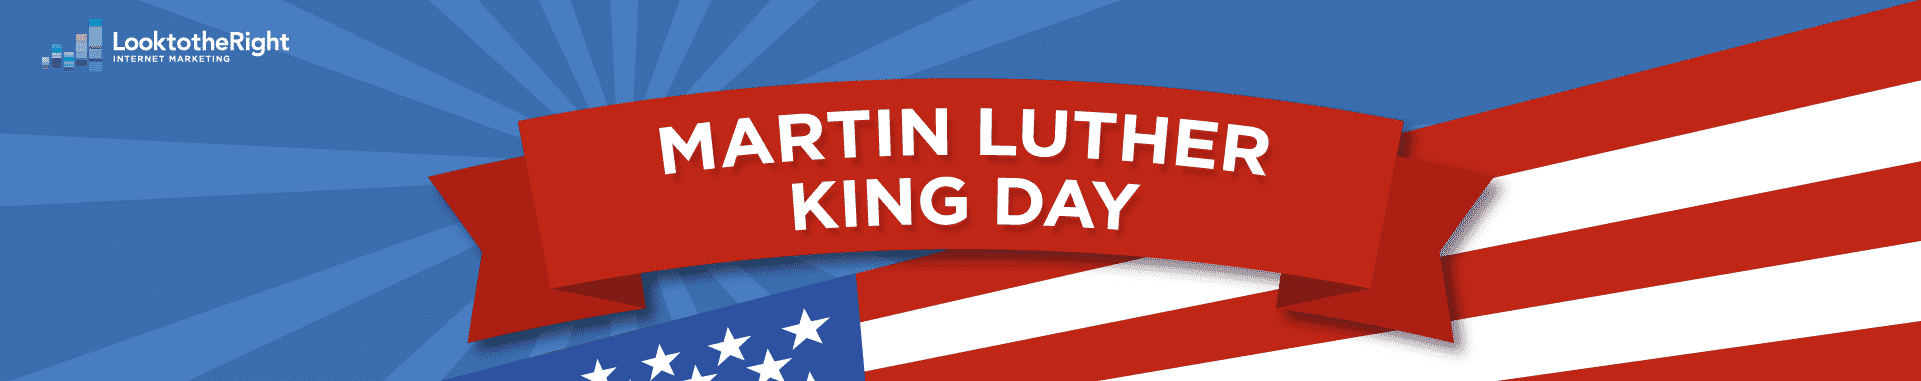 martin luther king jr day over american flag